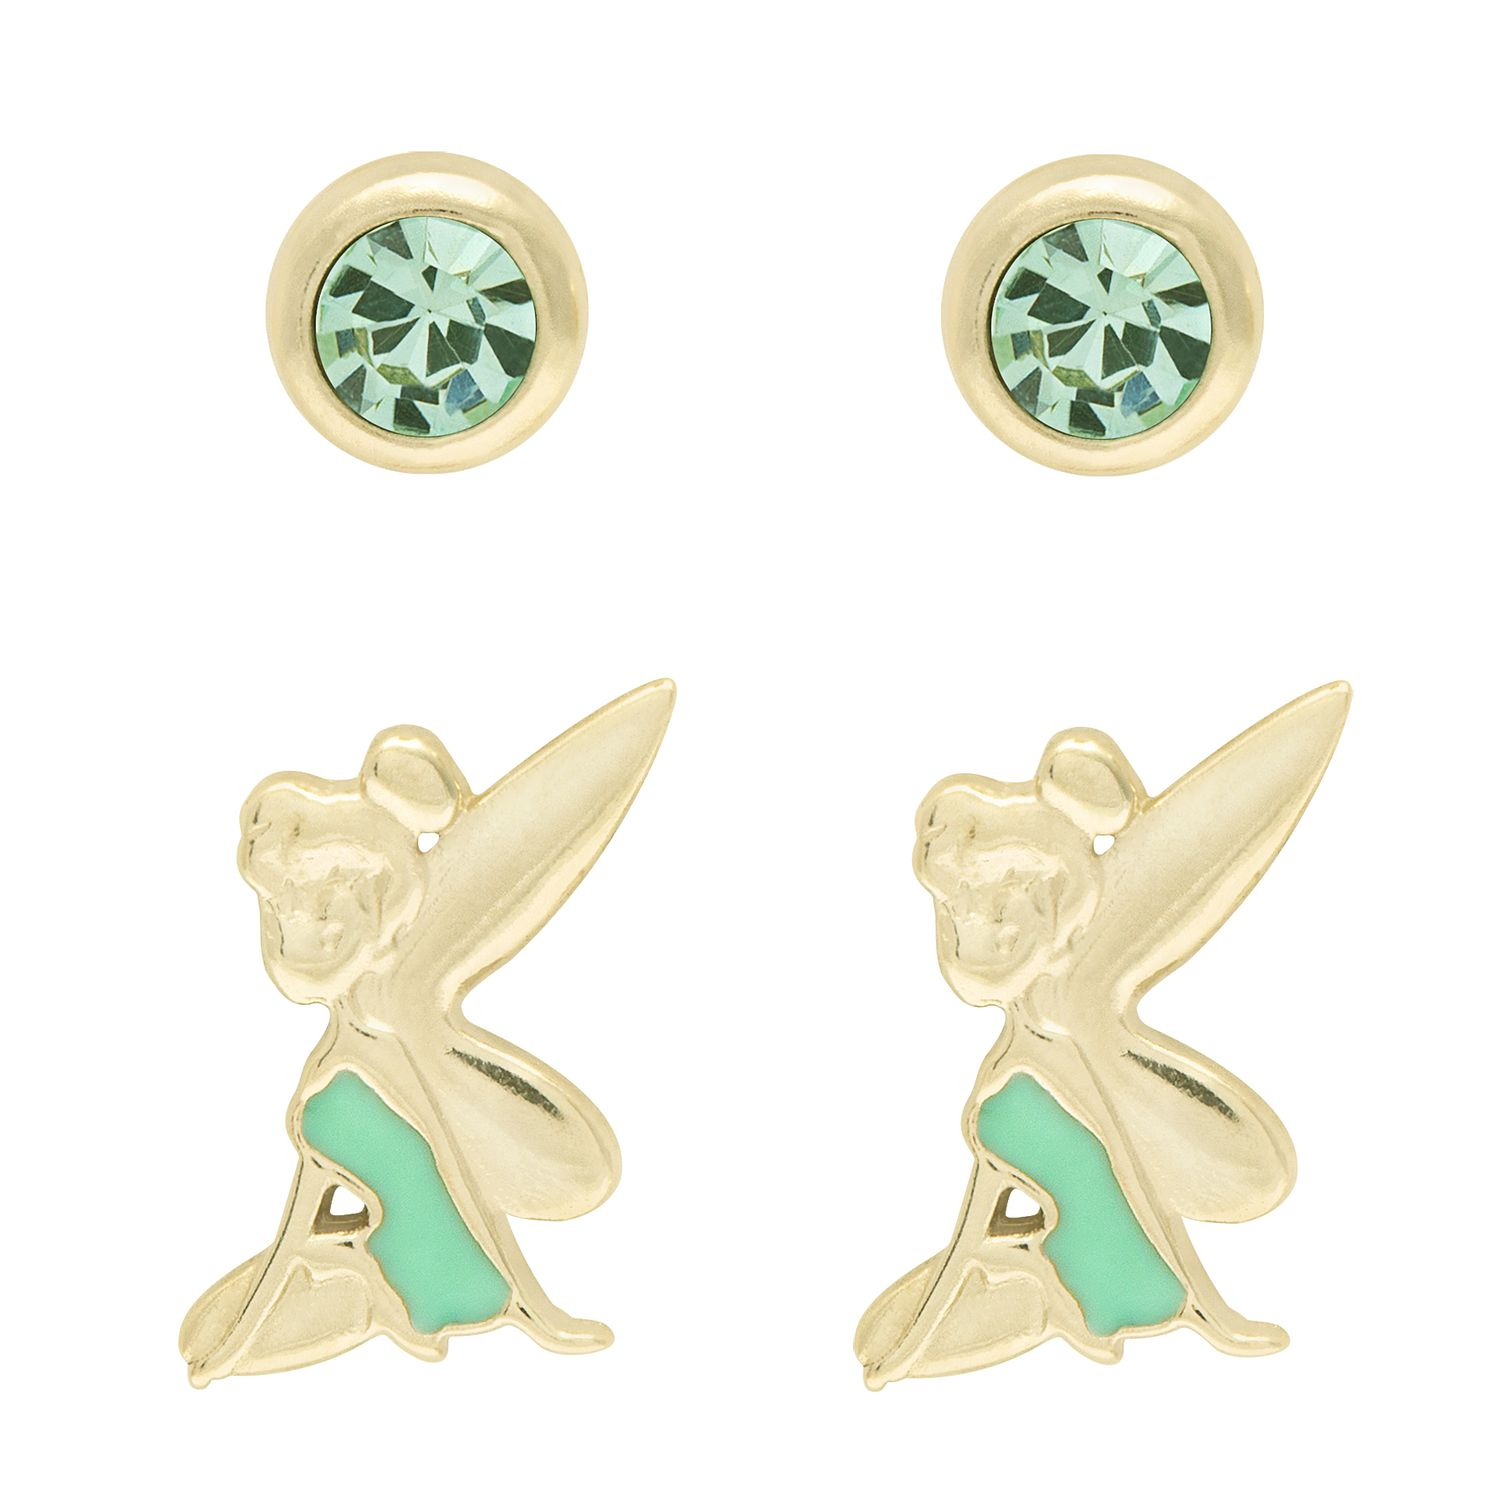 Disney Children's Tinker Bell Gold Tone Stud Earrings Set - Product number 6003761